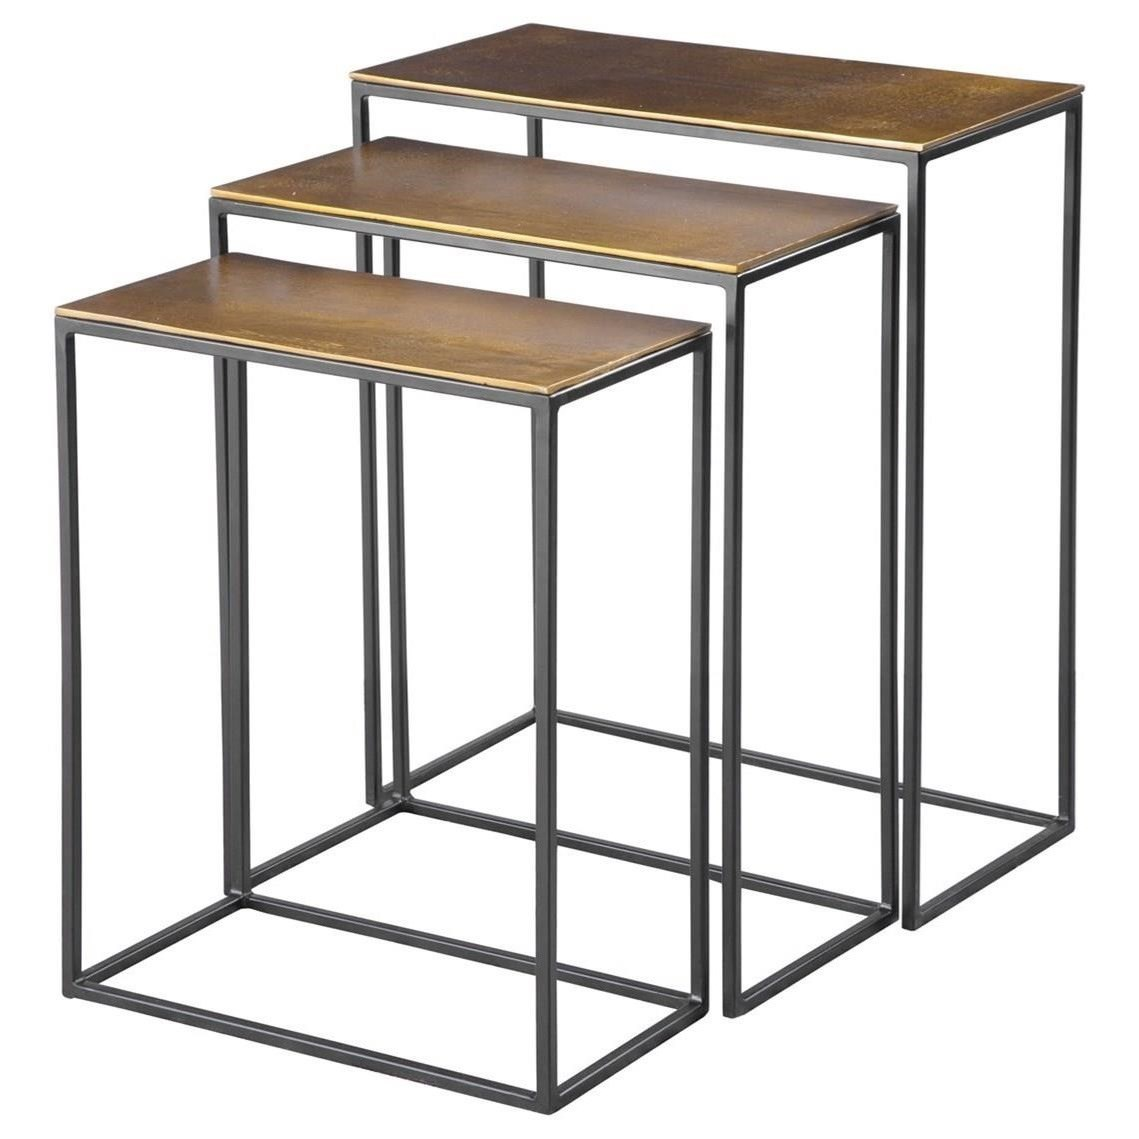 Accent Furniture - Occasional Tables Coreene Gold Nesting Tables Set/3 by Uttermost at Mueller Furniture